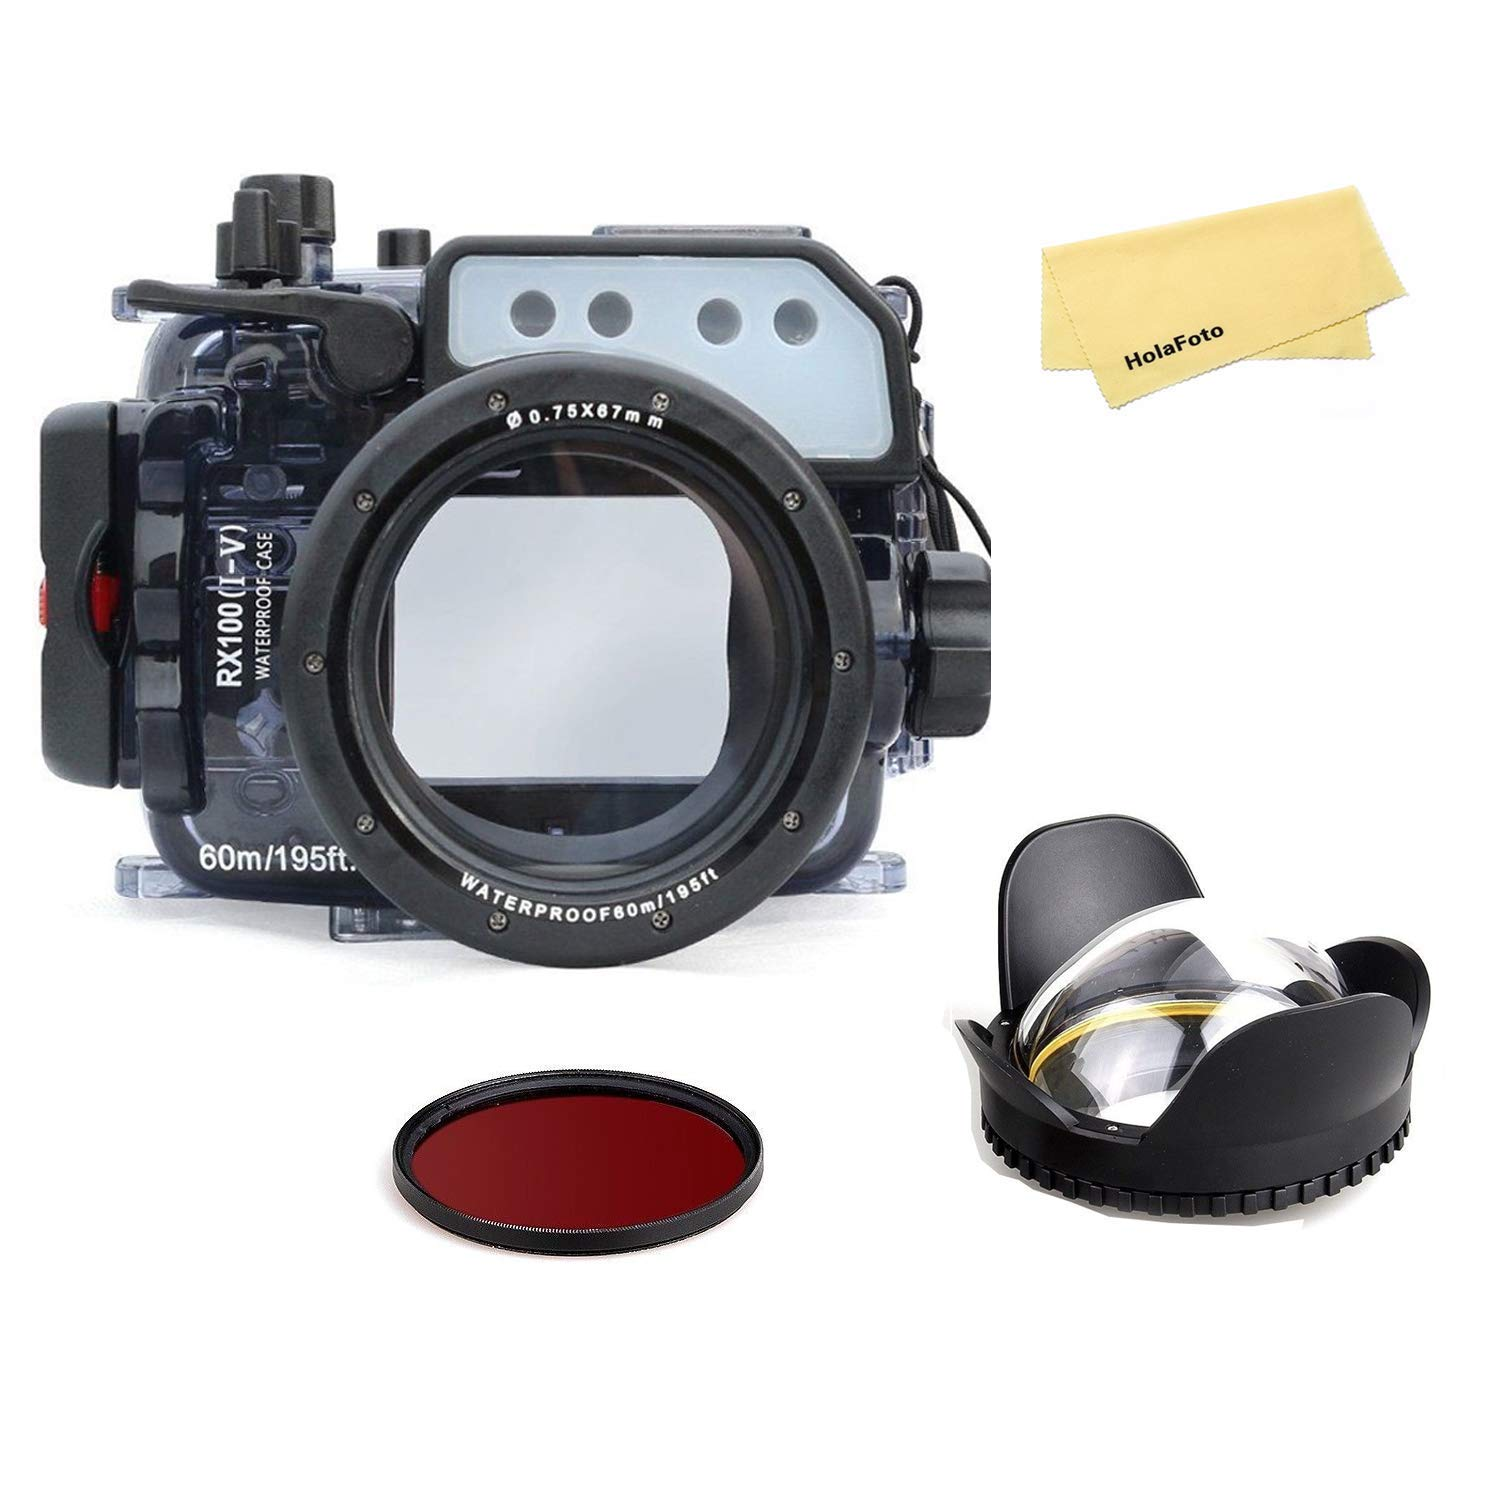 Seafrogs Underwater Camera Housing w/Dome Port Kit, Waterproof Diving Protective Case for Sony RX100/RX100 II/RX100 III/RX100 IV/RX100 V, 195FT/60M